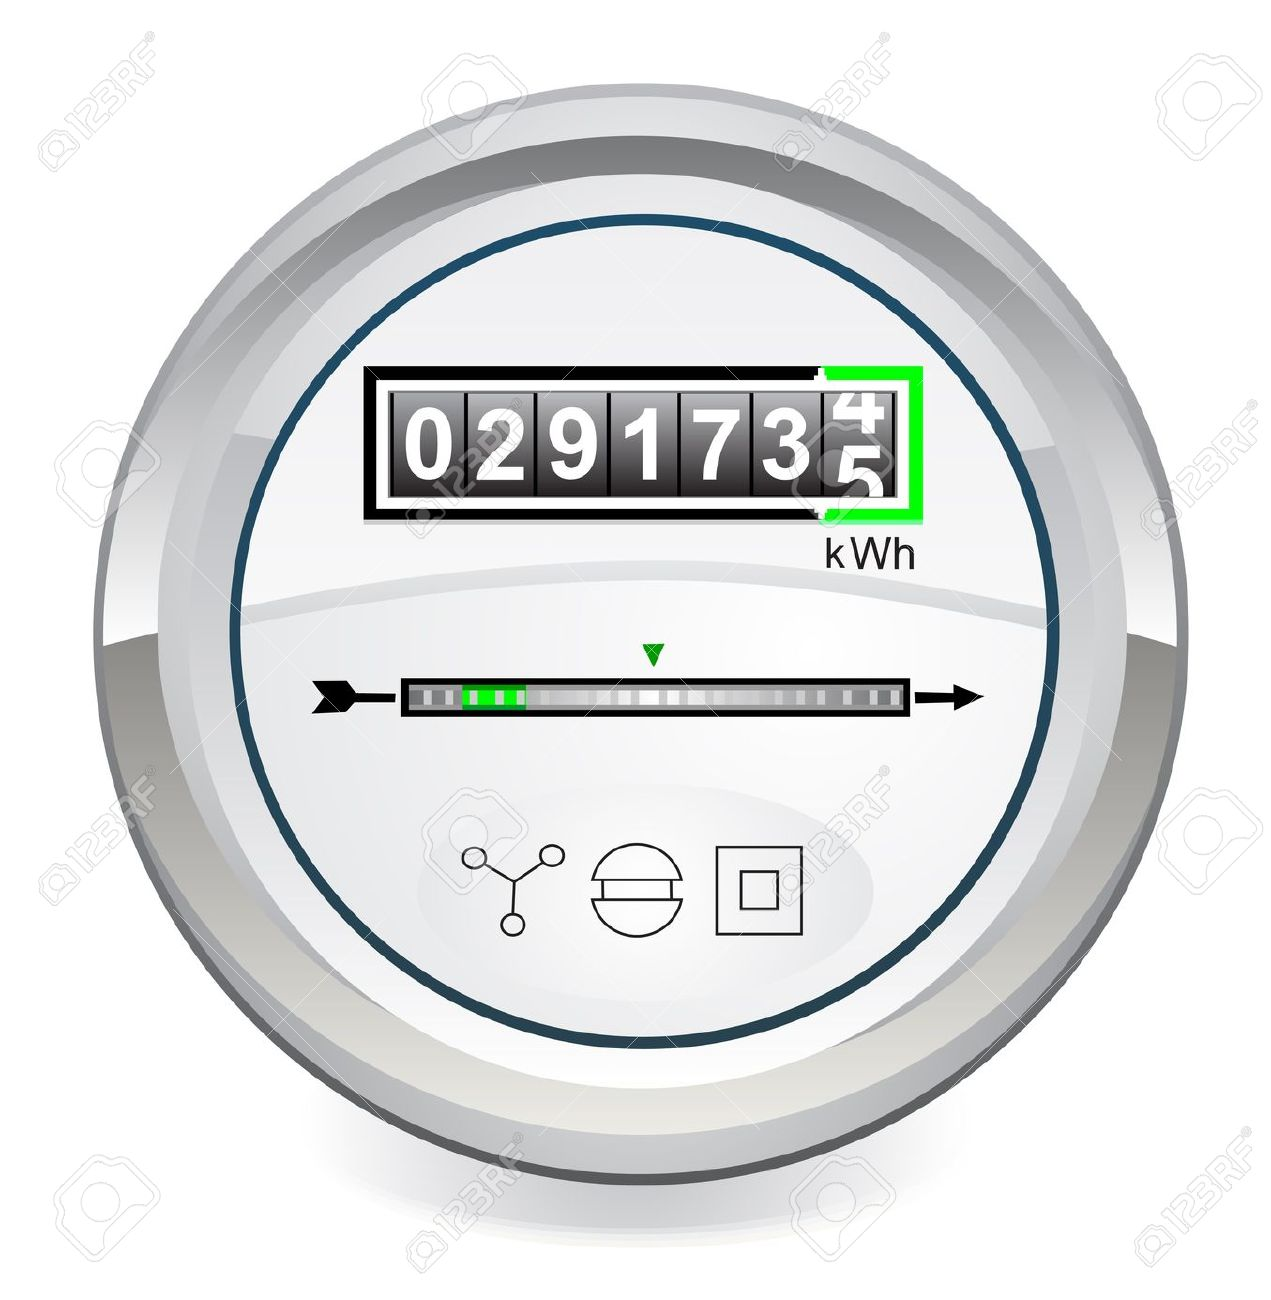 Energy Meter Royalty Free Cliparts, Vectors, And Stock.